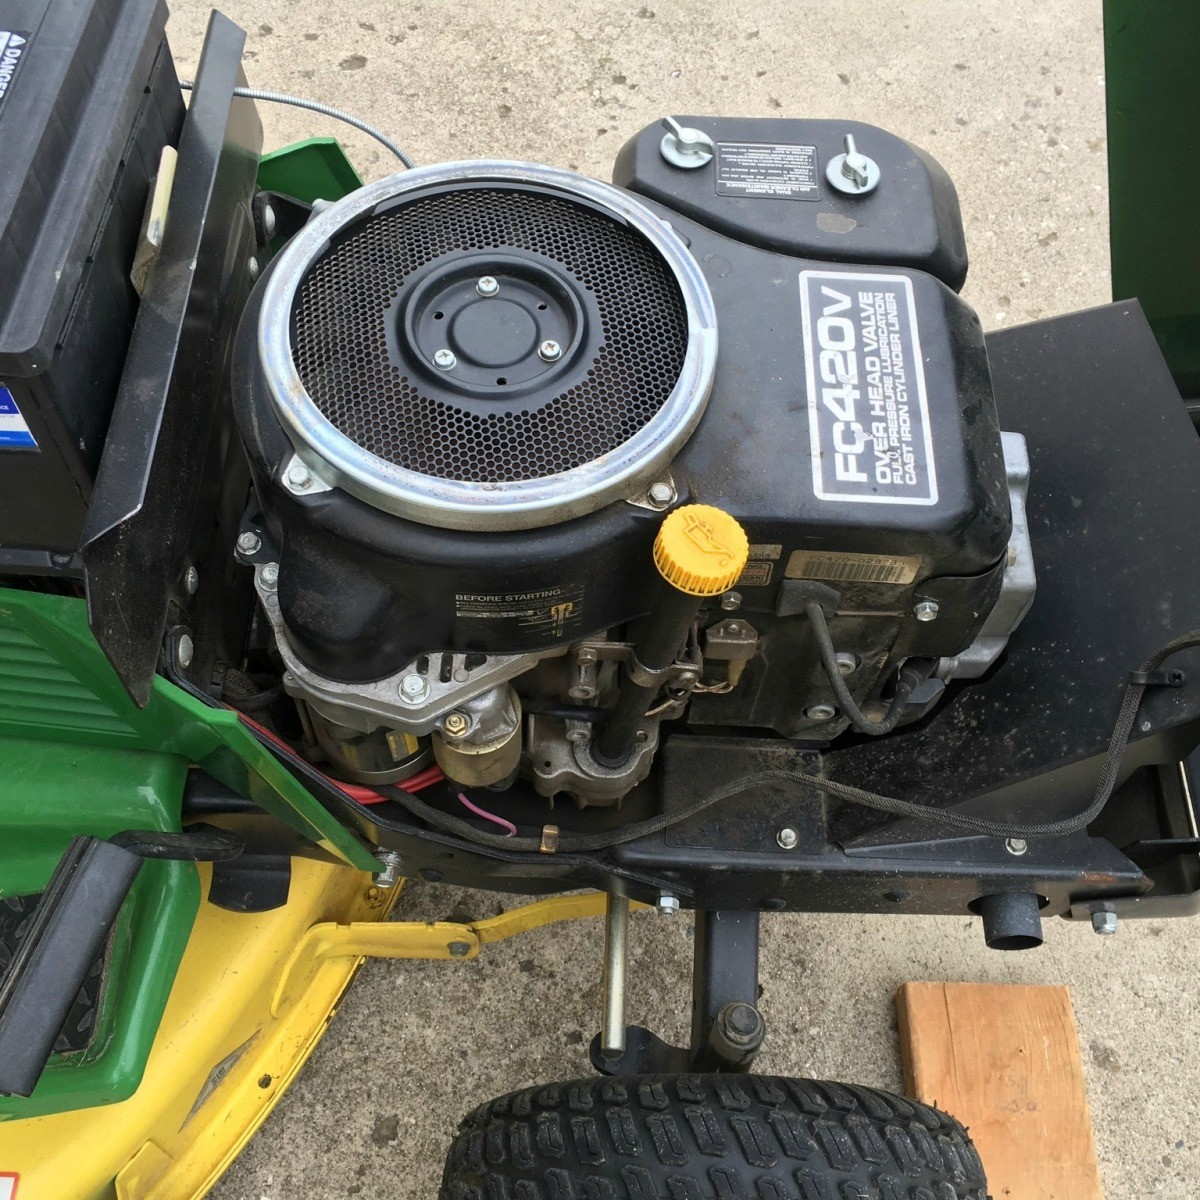 New Batteries Keep Draining On Lawn Tractor Thriftyfun